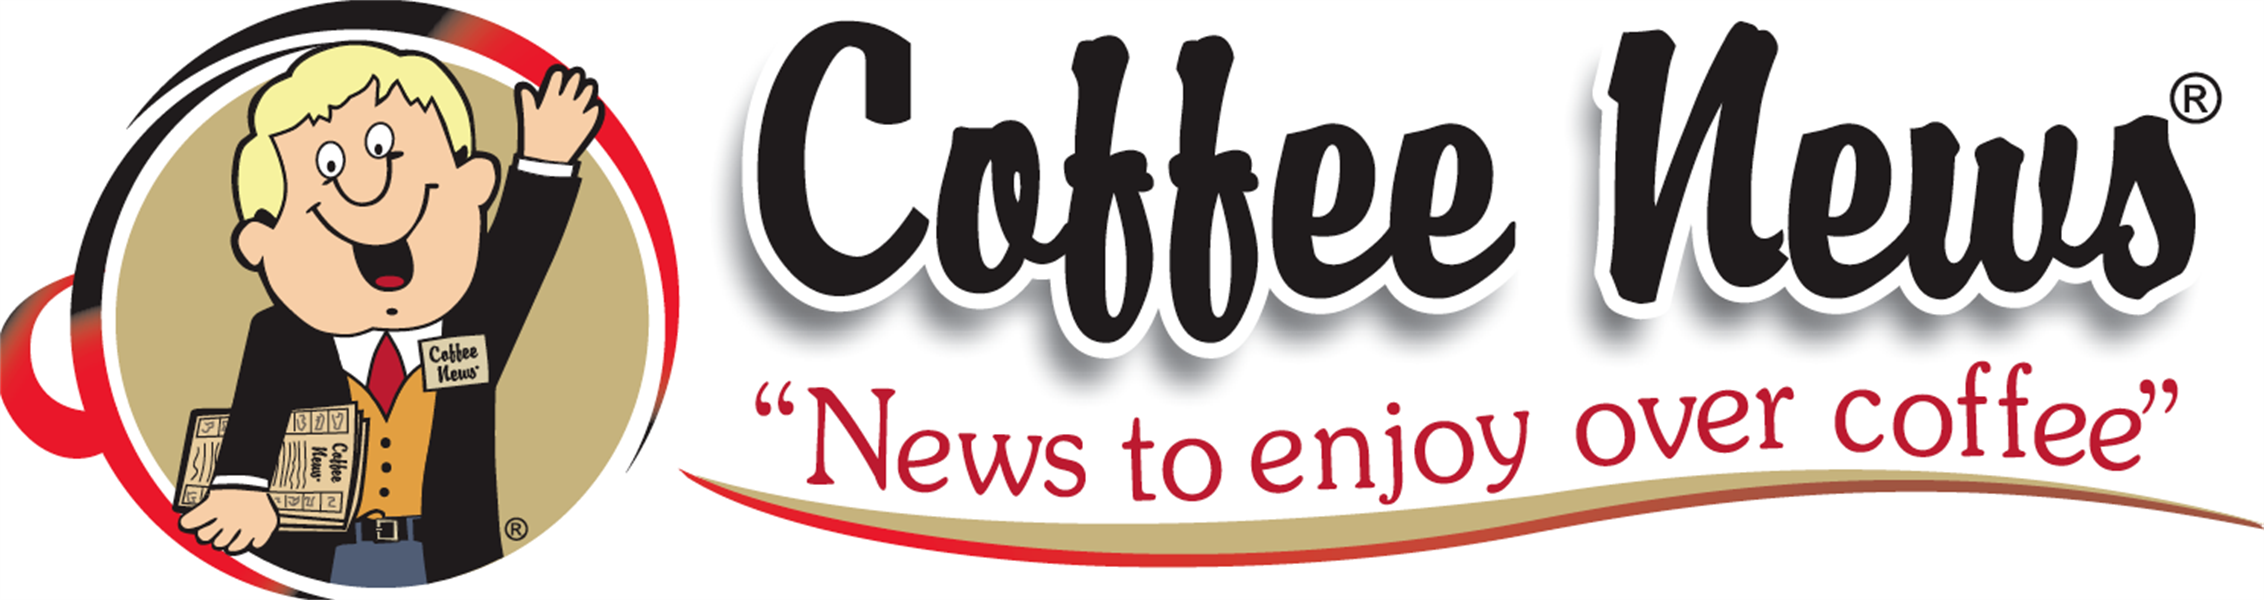 Coffee News Indiana